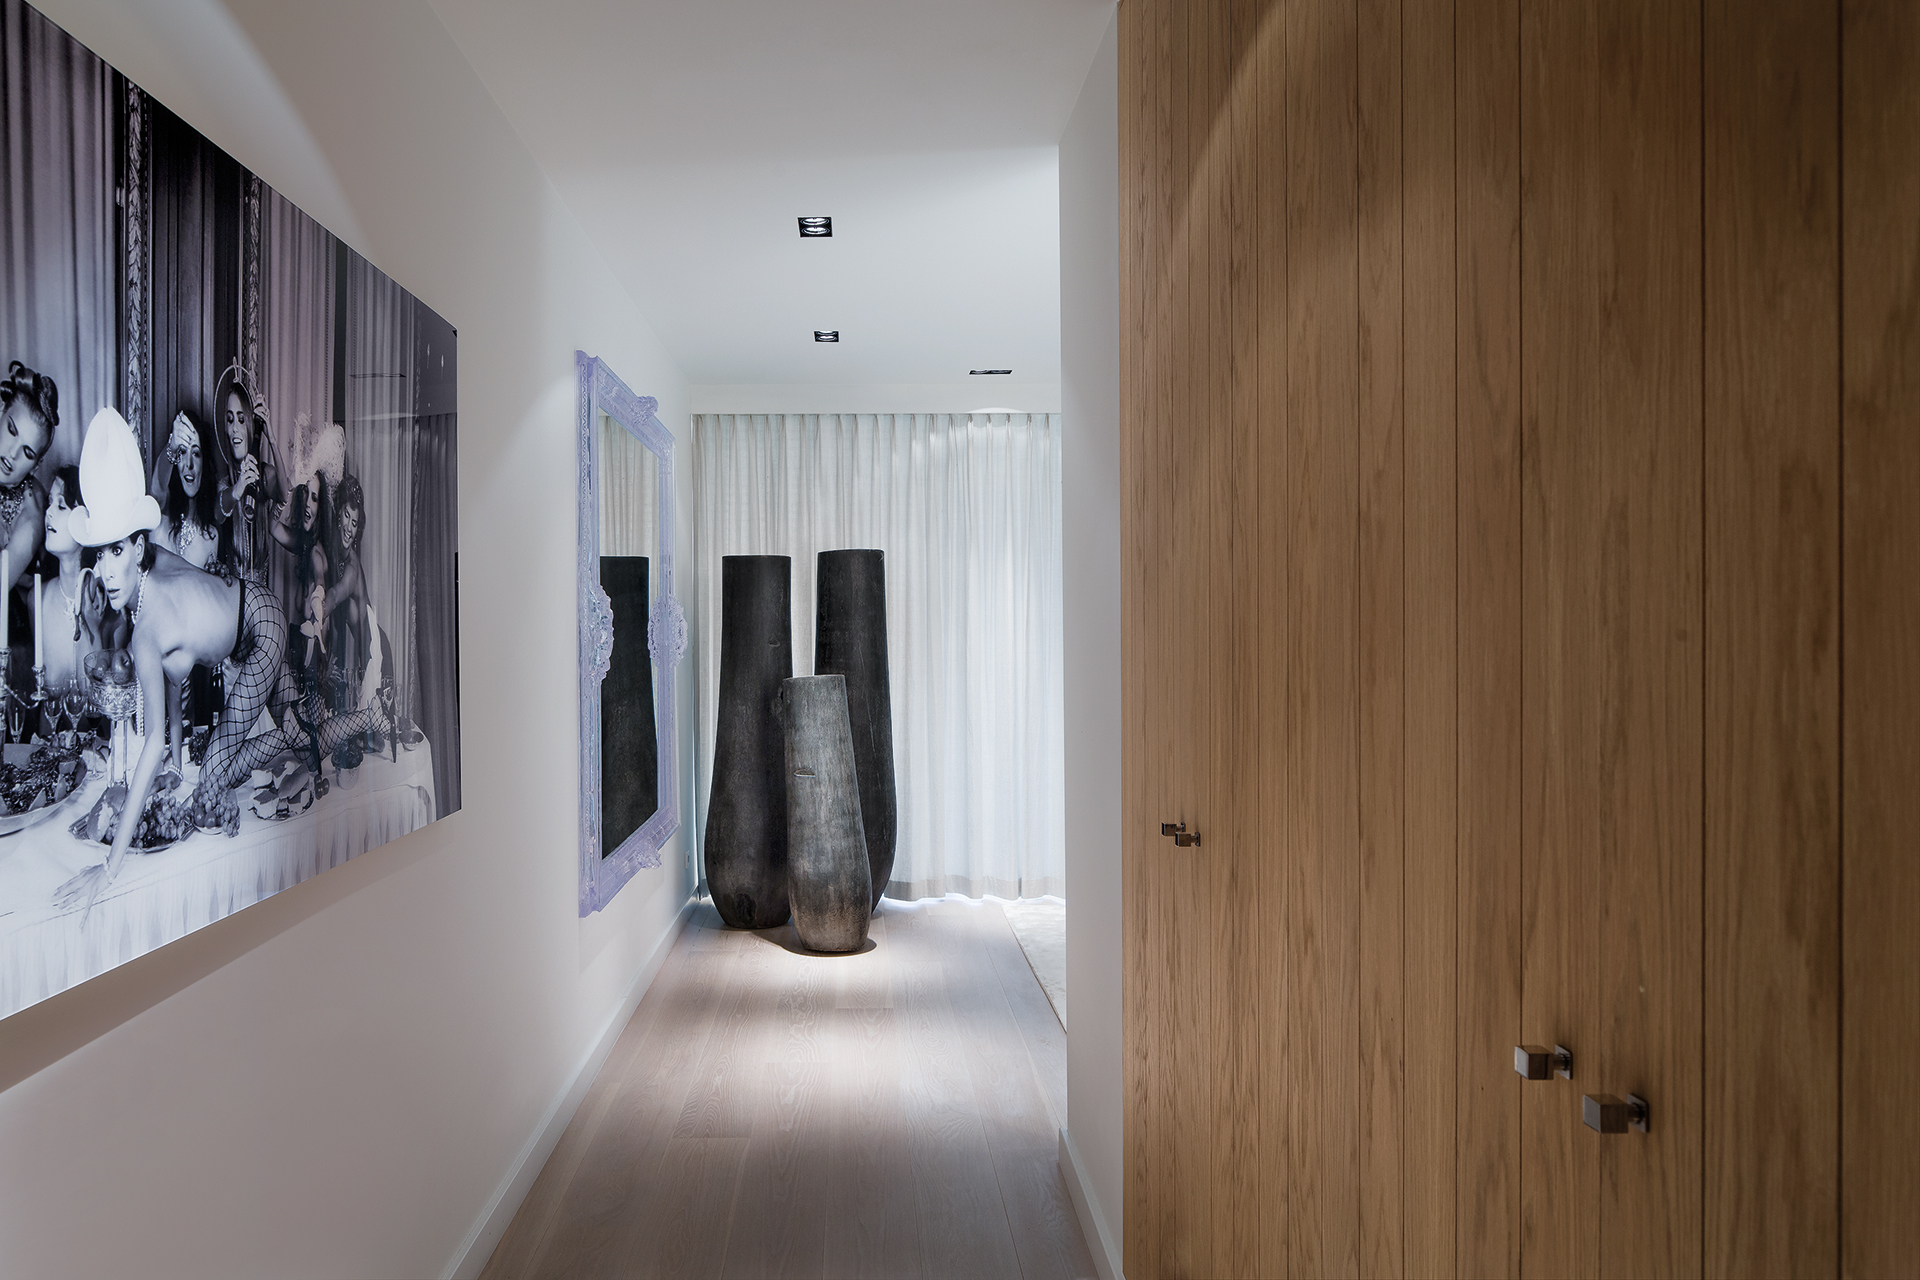 Hallway decorated with warm wooden stain flooring and a cobra art painting with earthern pottery at the end